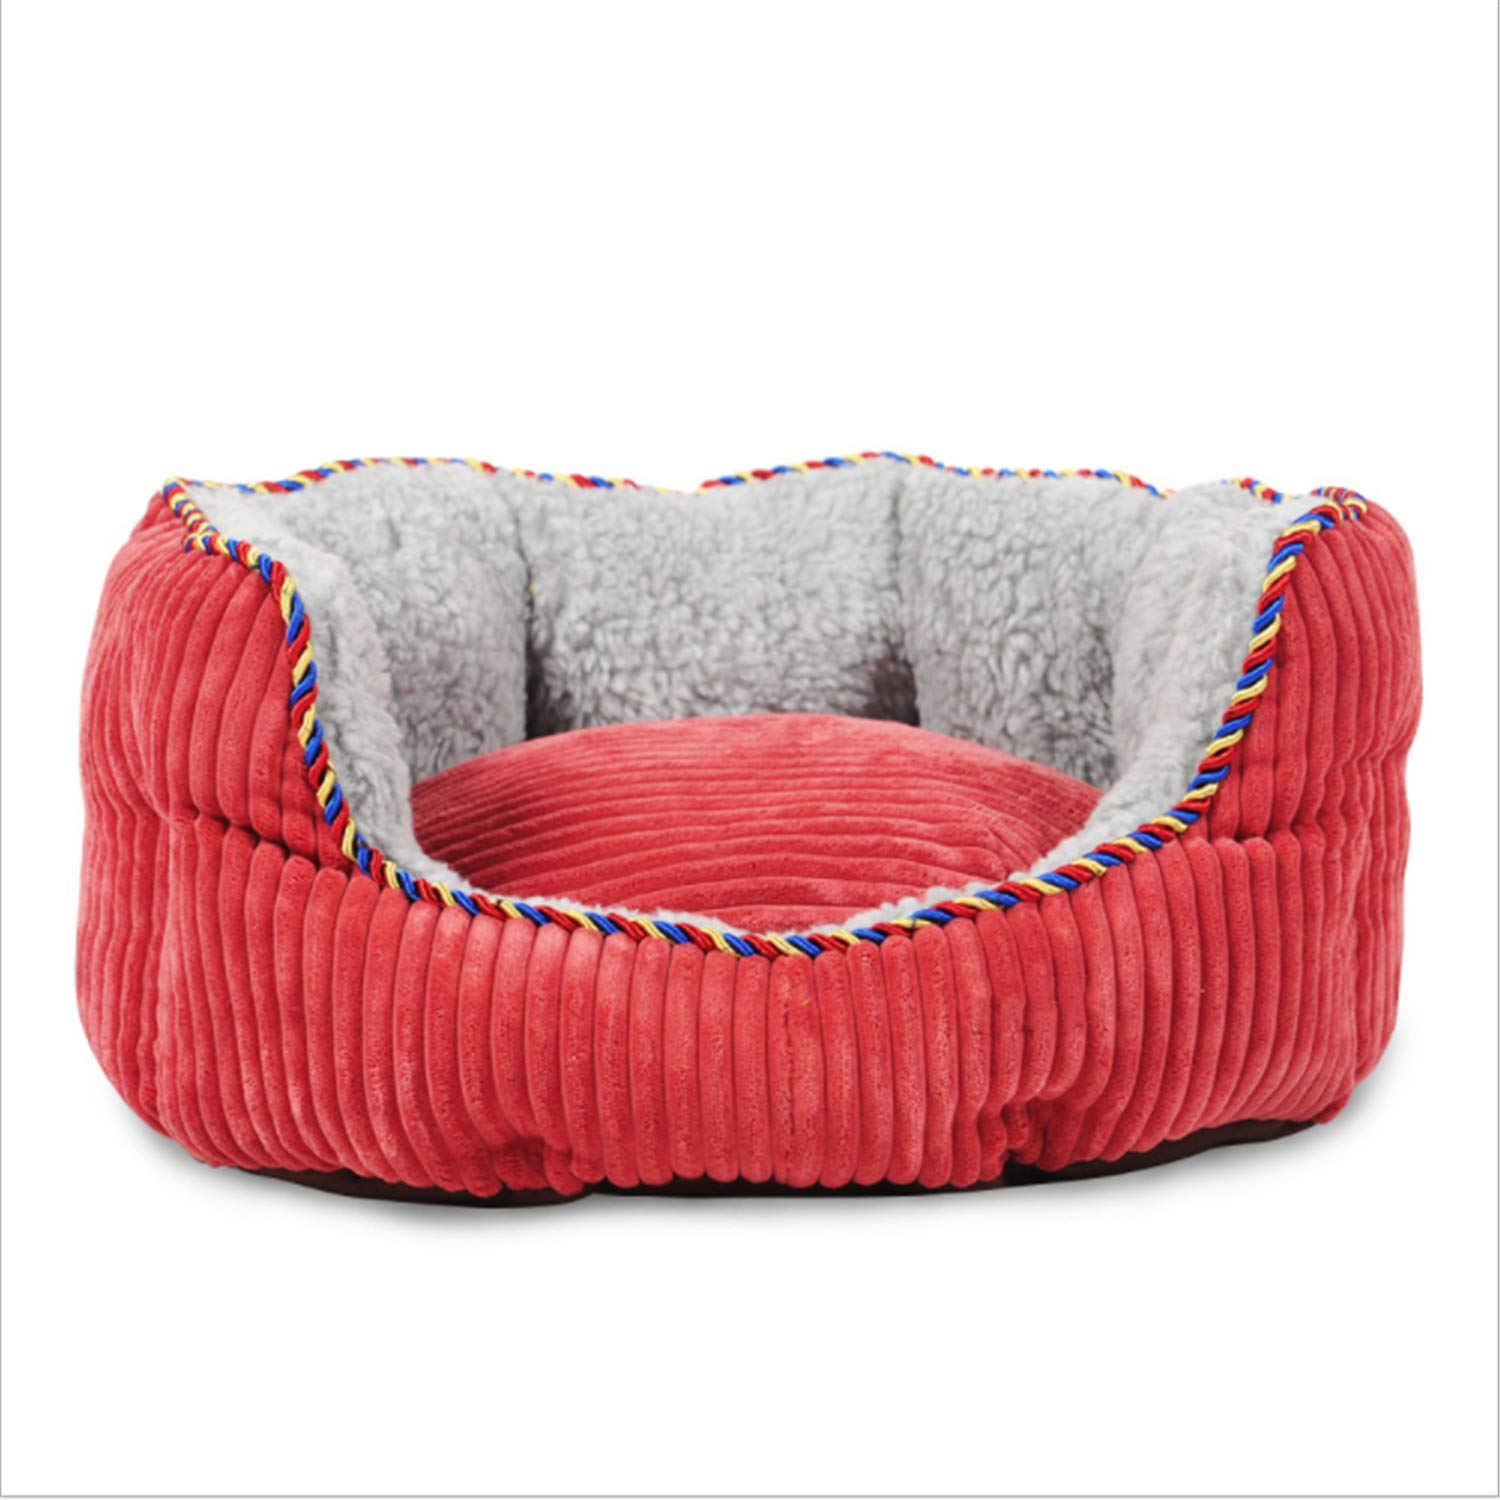 Medium Dog Kennel,high Quality Dog Bed mat Sofa,Natural Lambswool Oxford Cloth Teddy Cat nest Pet Supplies,Two Sizes